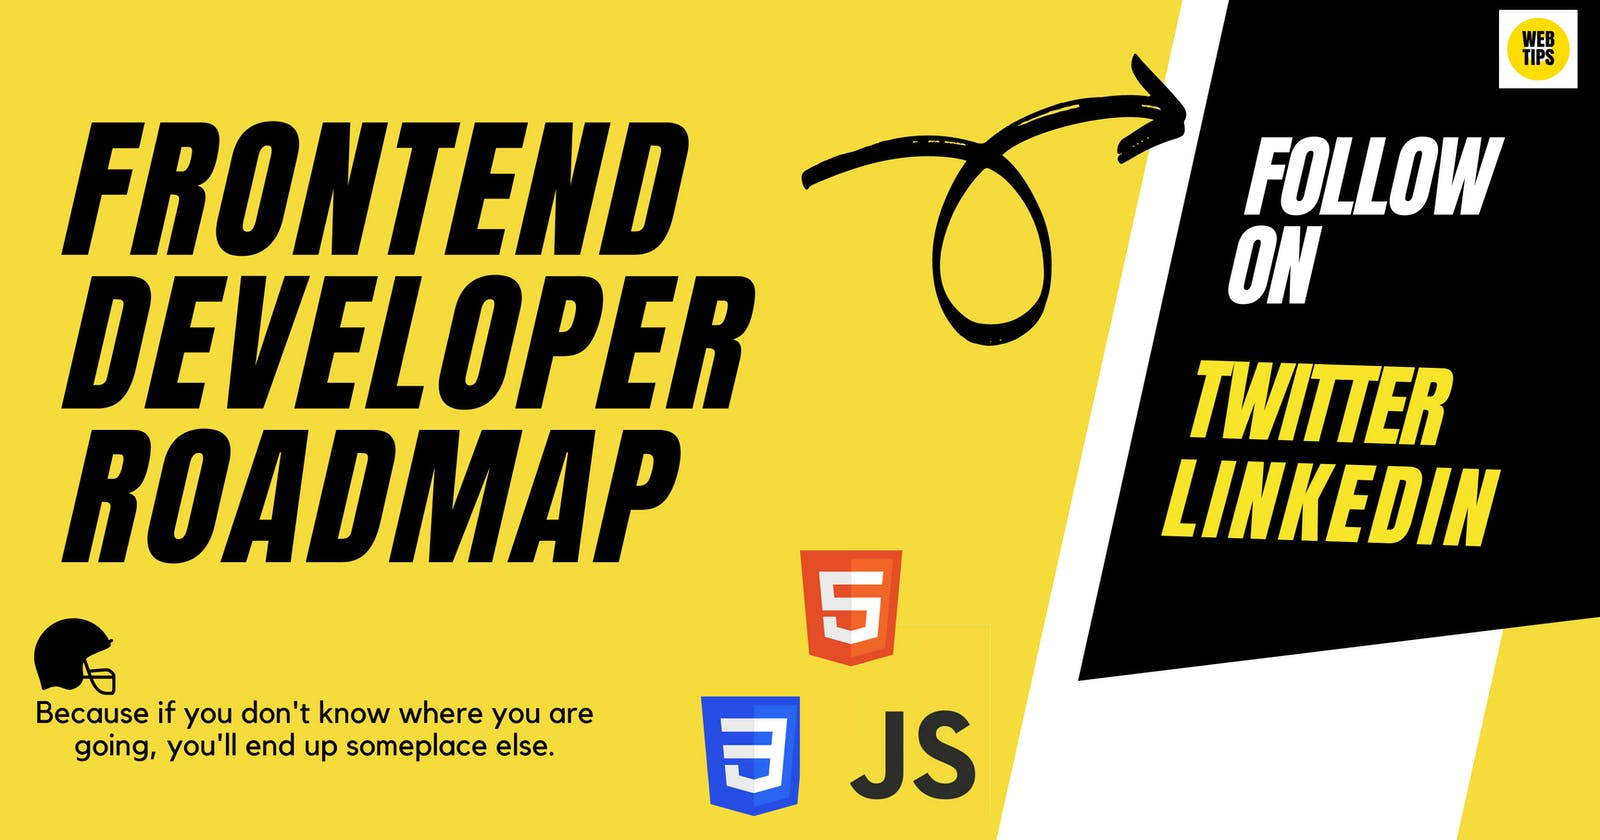 Complete roadmap: How to get started with Frontend Development?